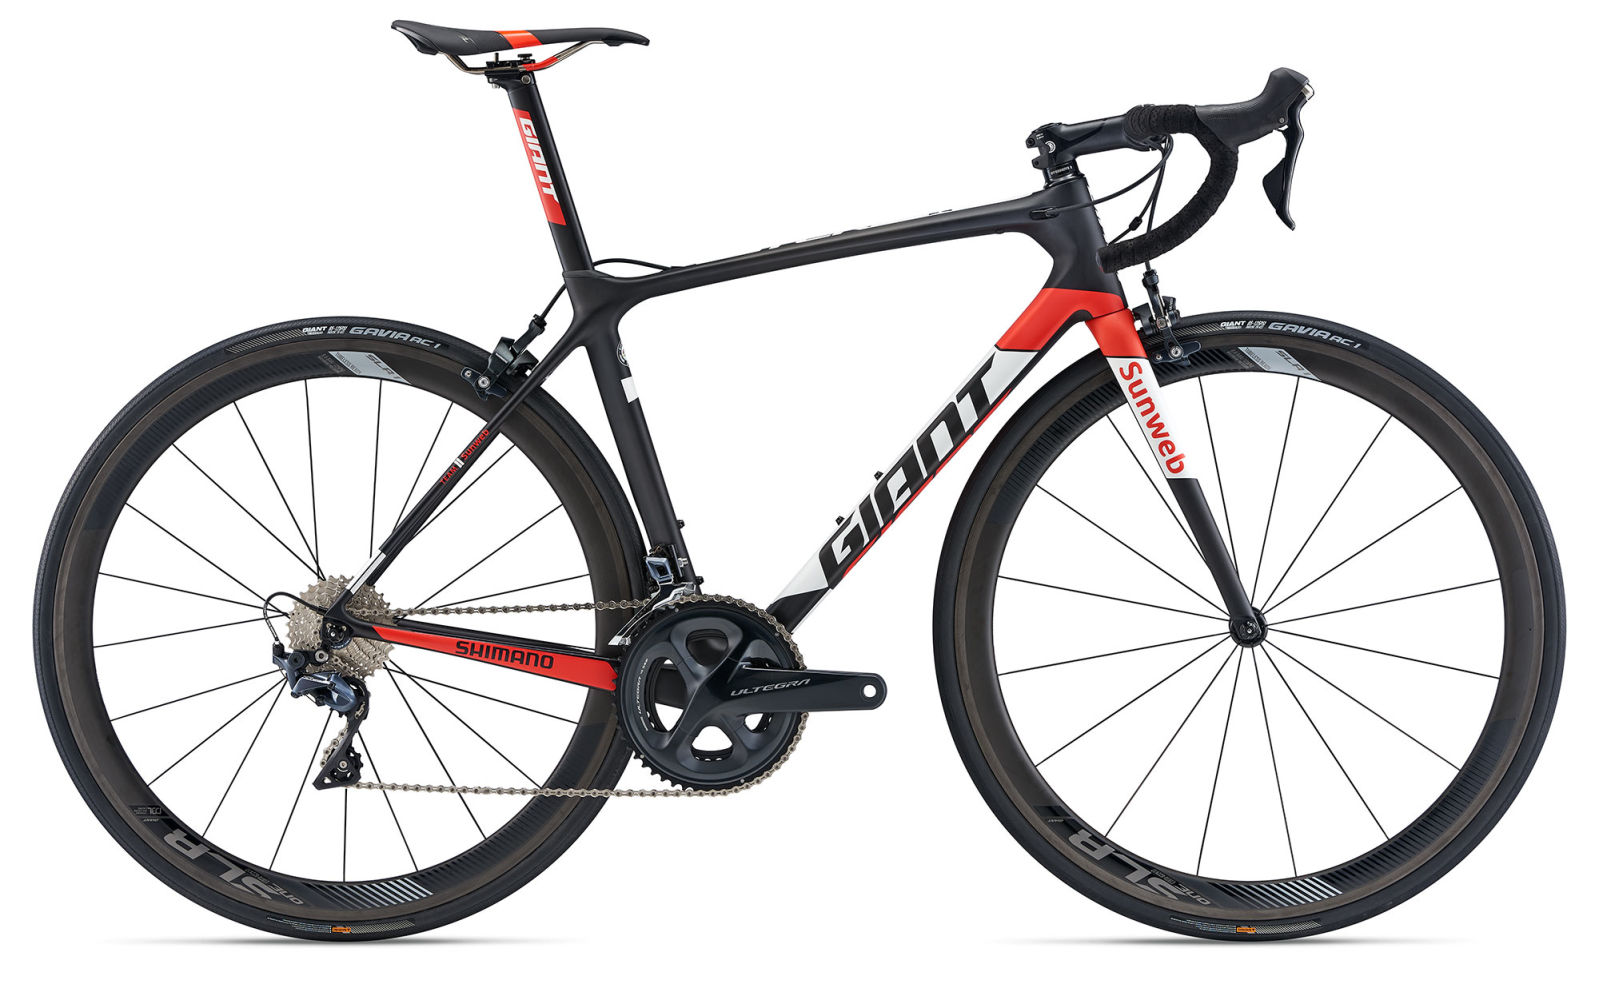 2018 Giant TCR Advanced Team issue limited edition aero road bike